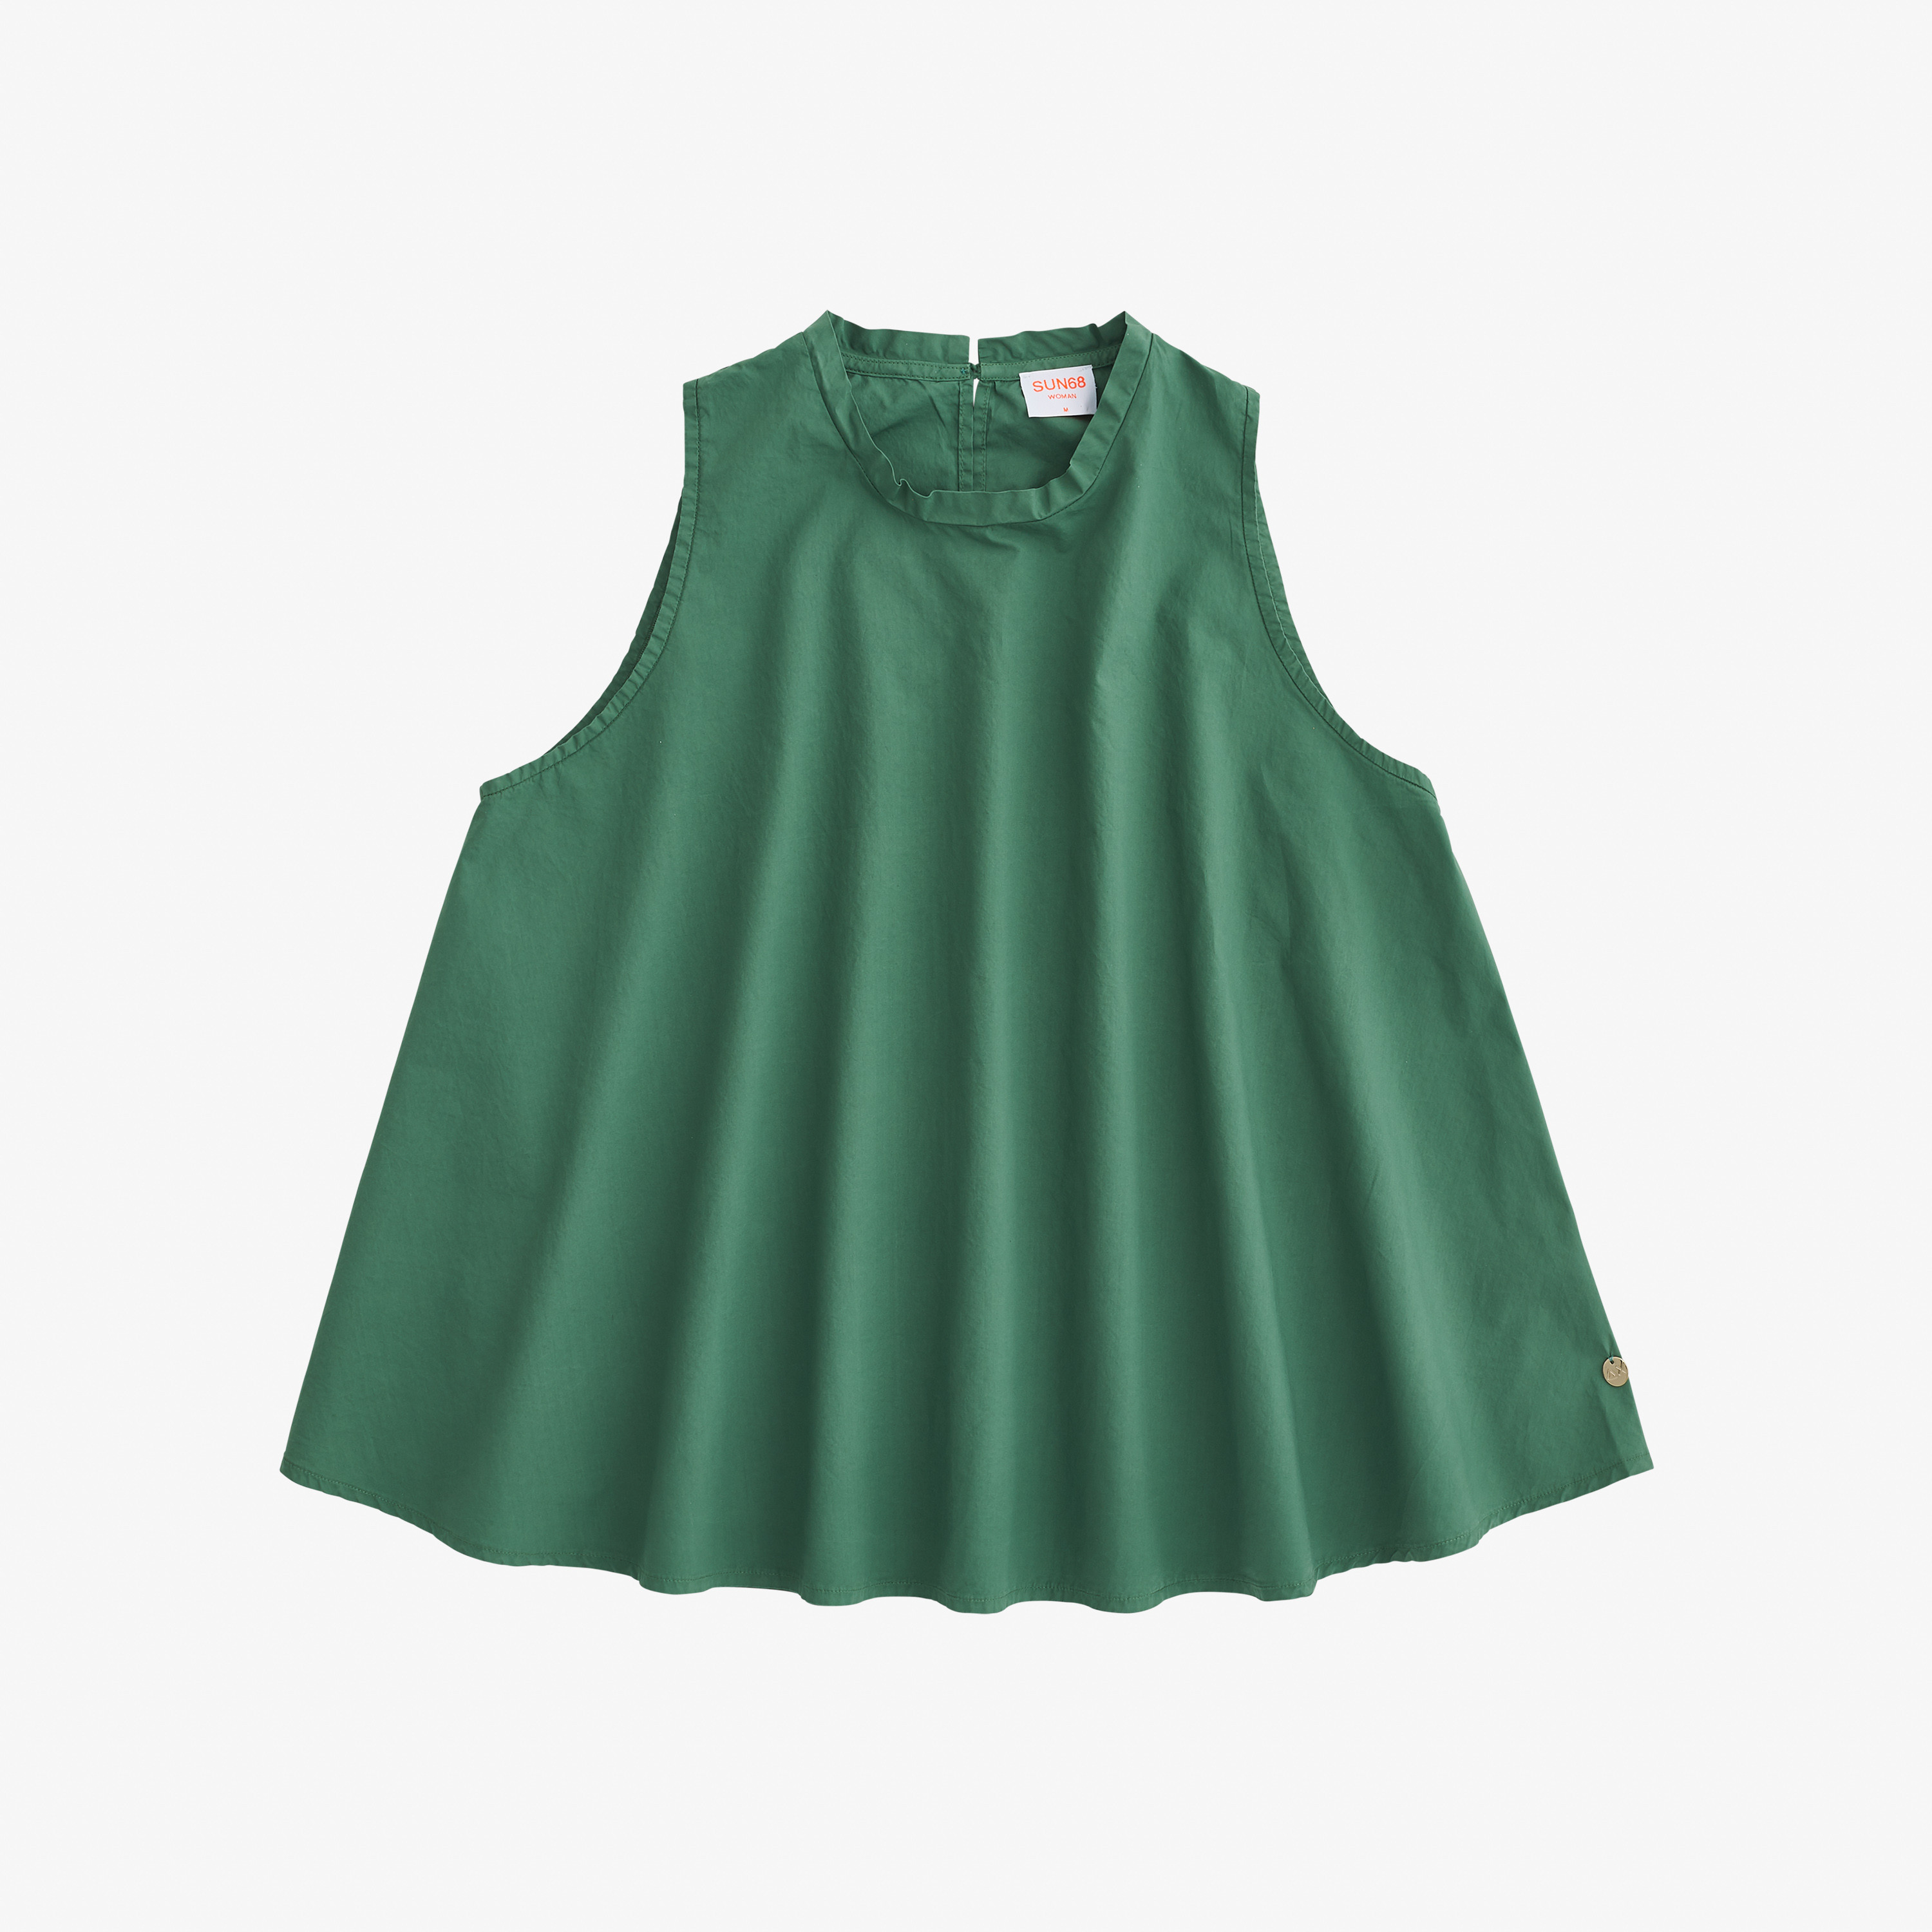 TOP SHIRT VERDE SALVIA